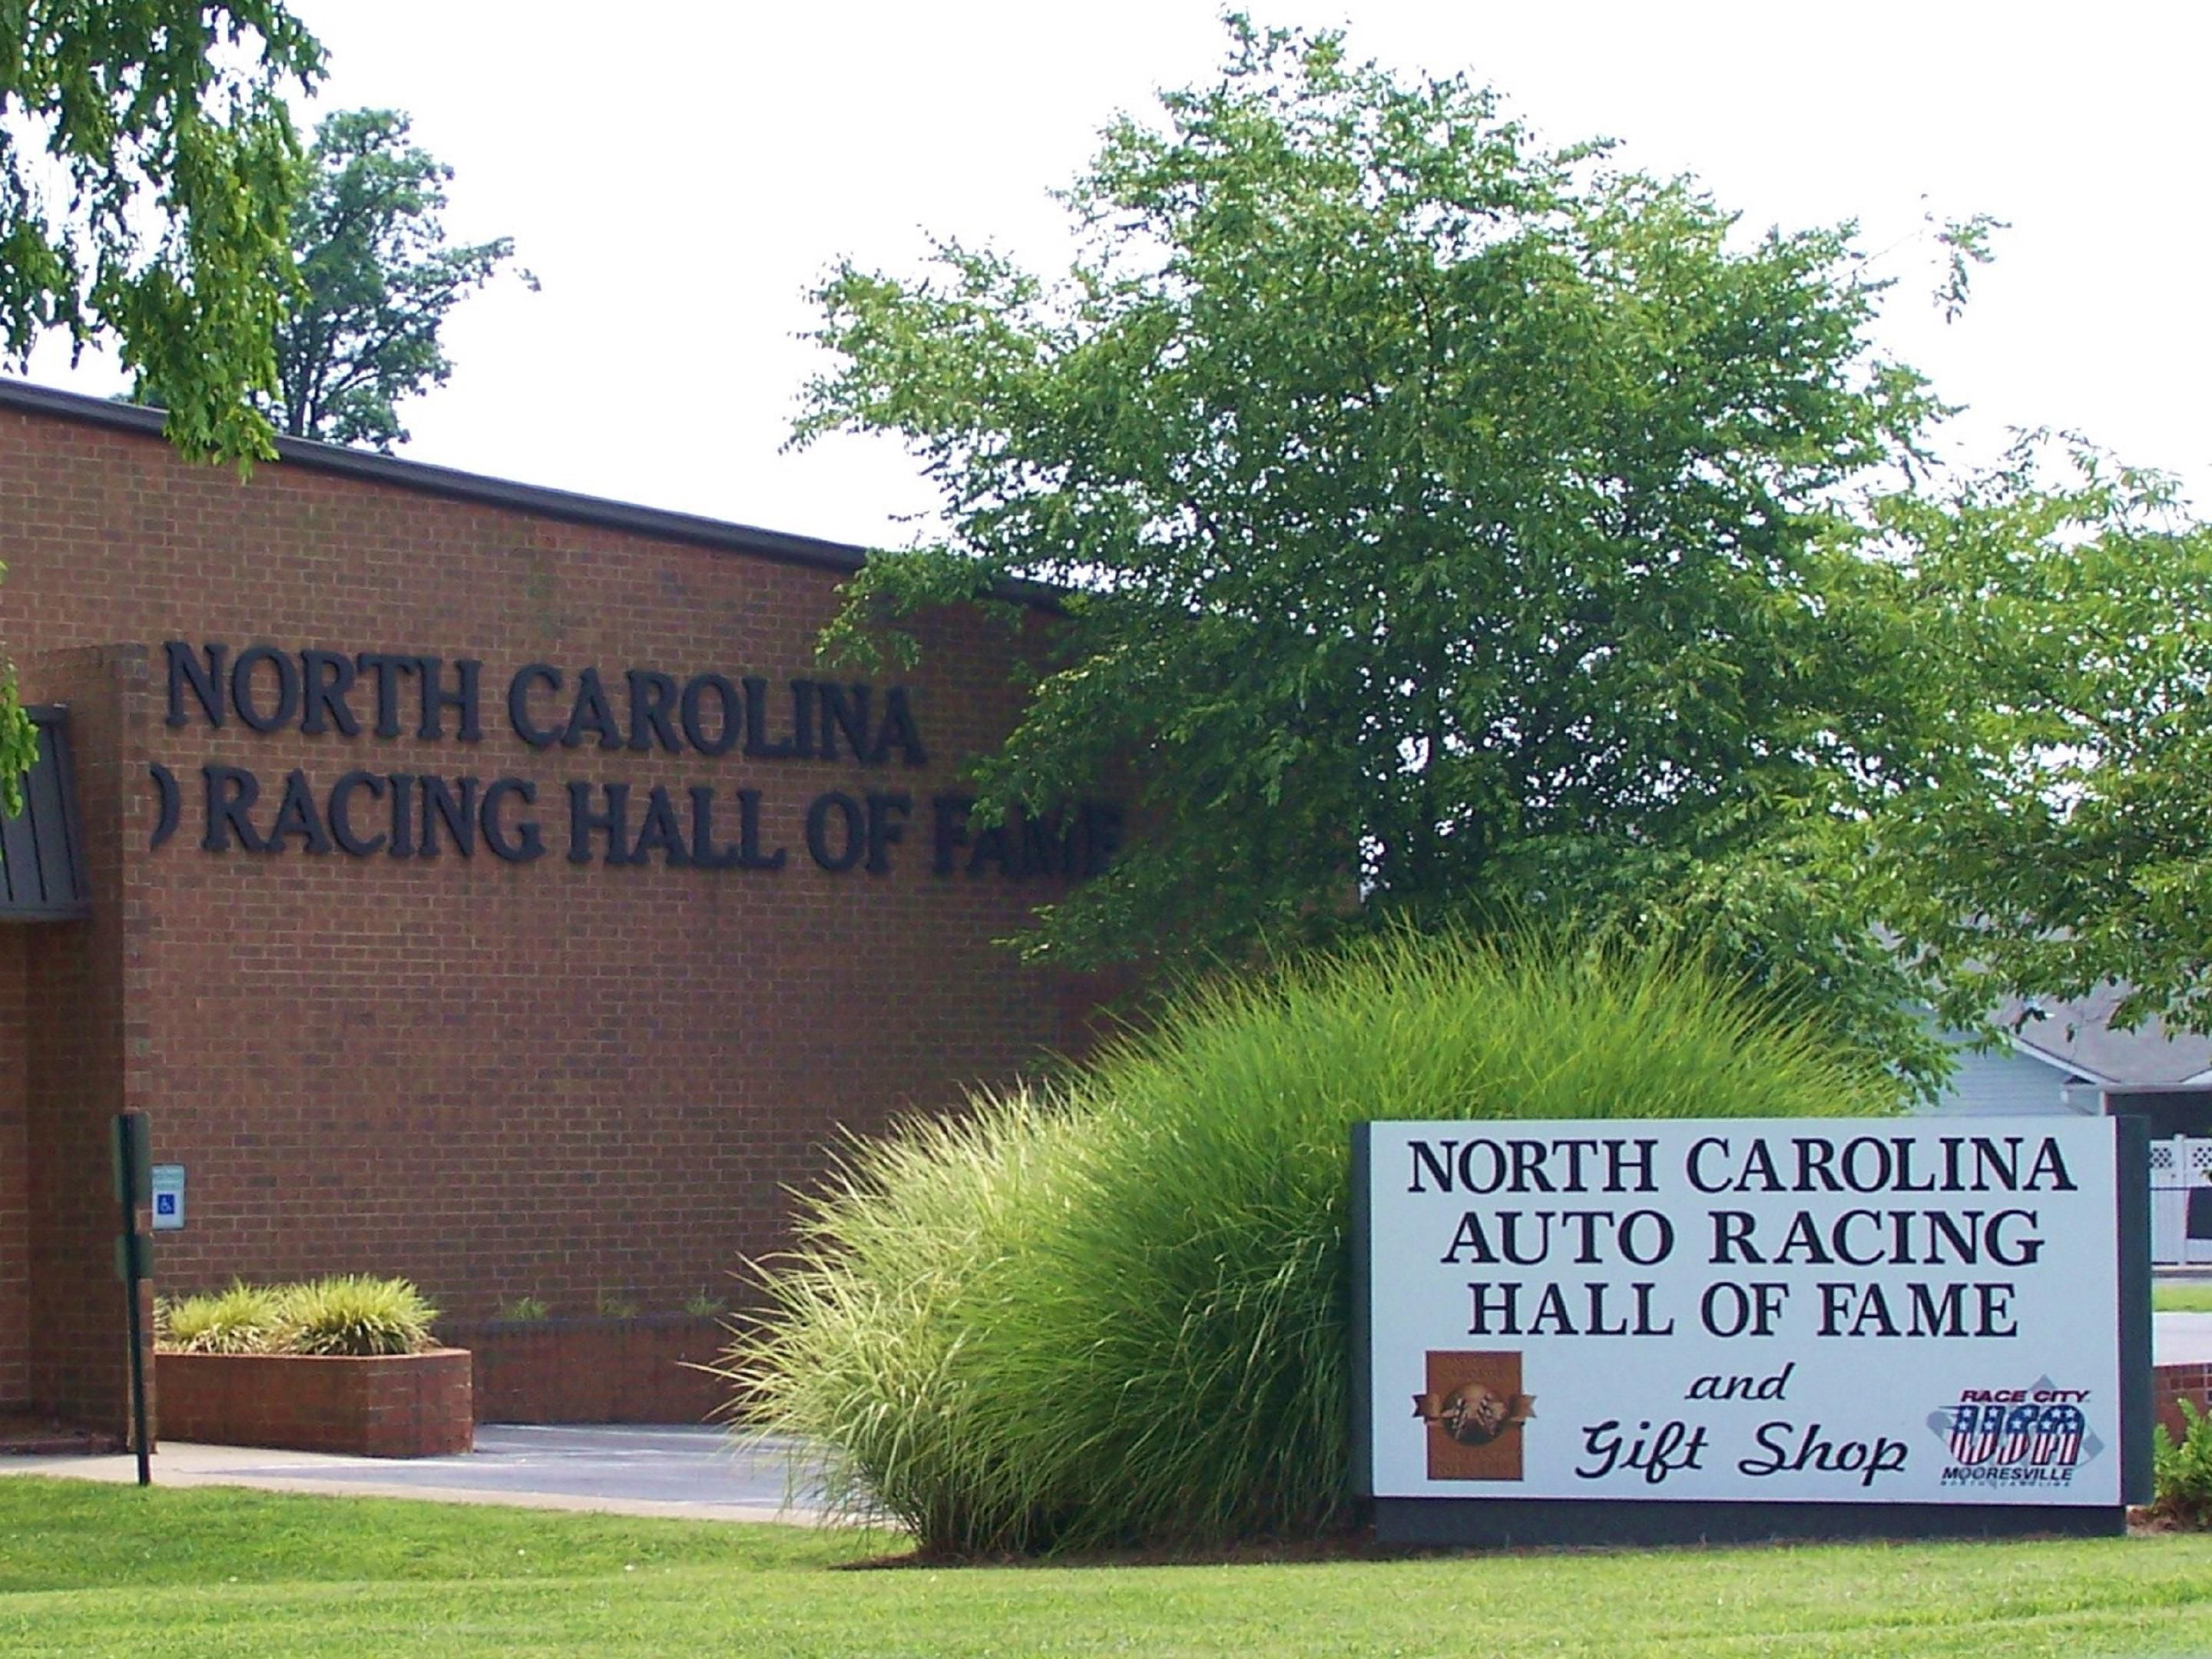 NC Racing Hall of Fame